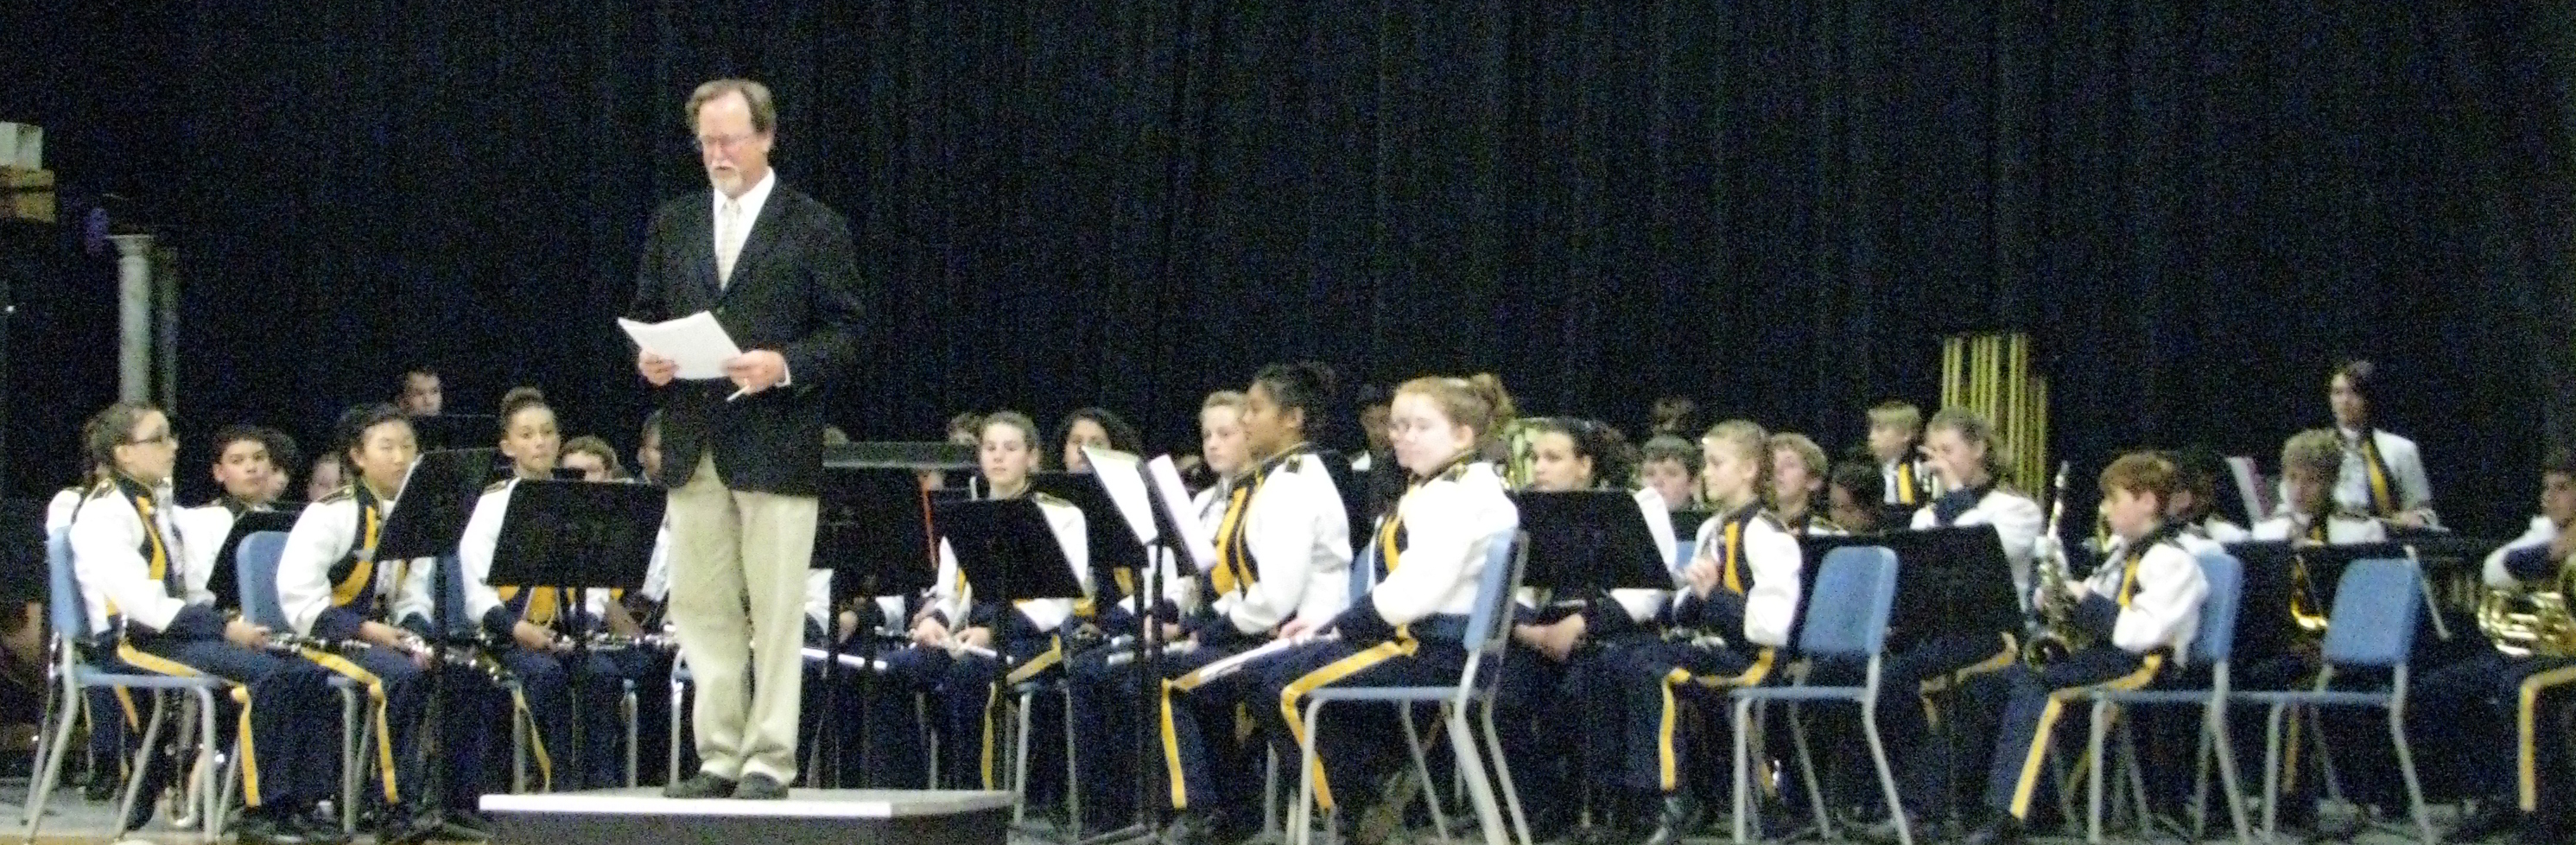 Wells Middle School Band Dominates At Foothill Band Review